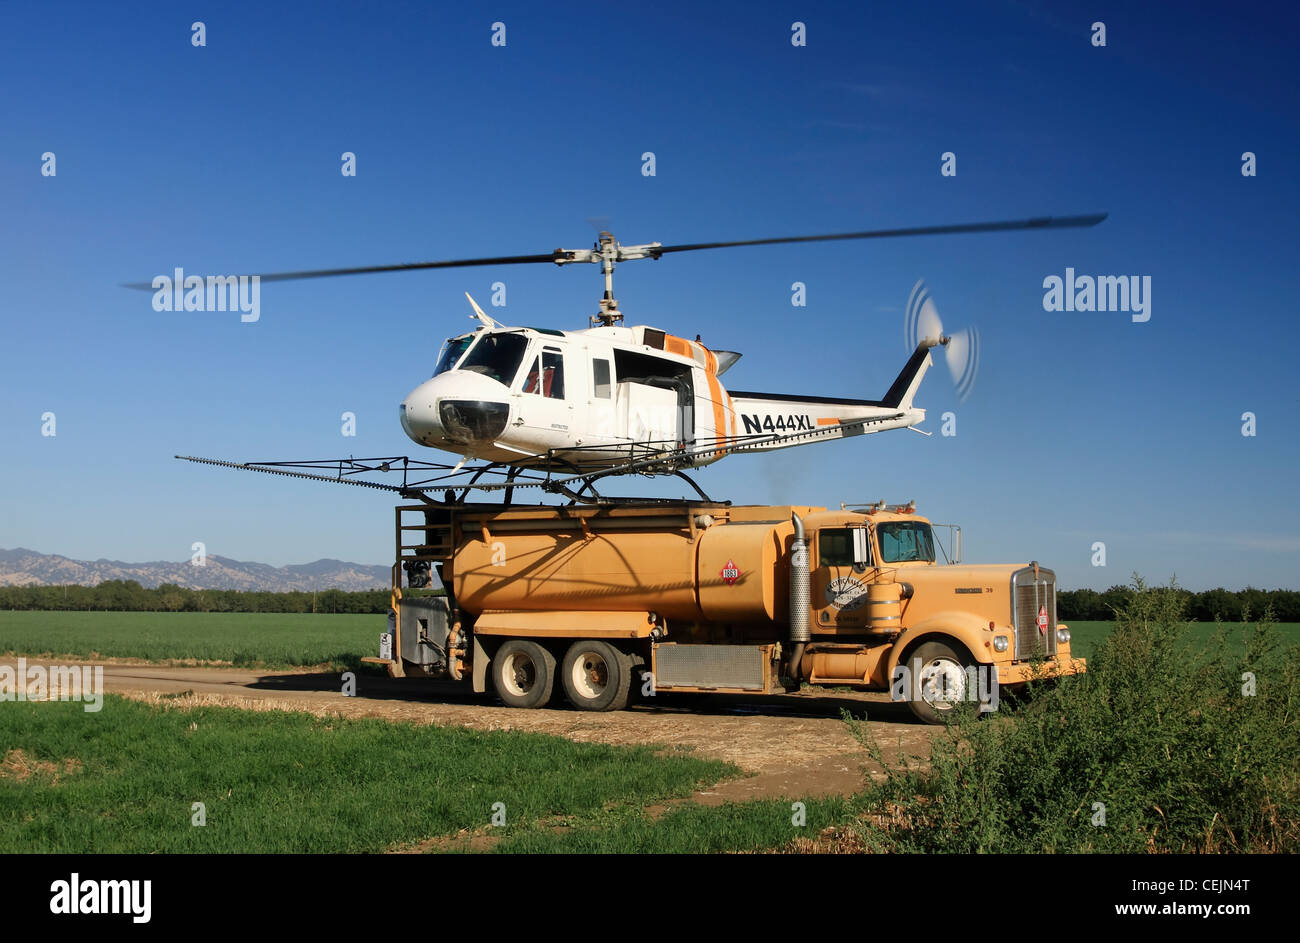 Helicopter crop duster lands on the back of a chemical truck to refill the tanks during spraying operations of a - Stock Image